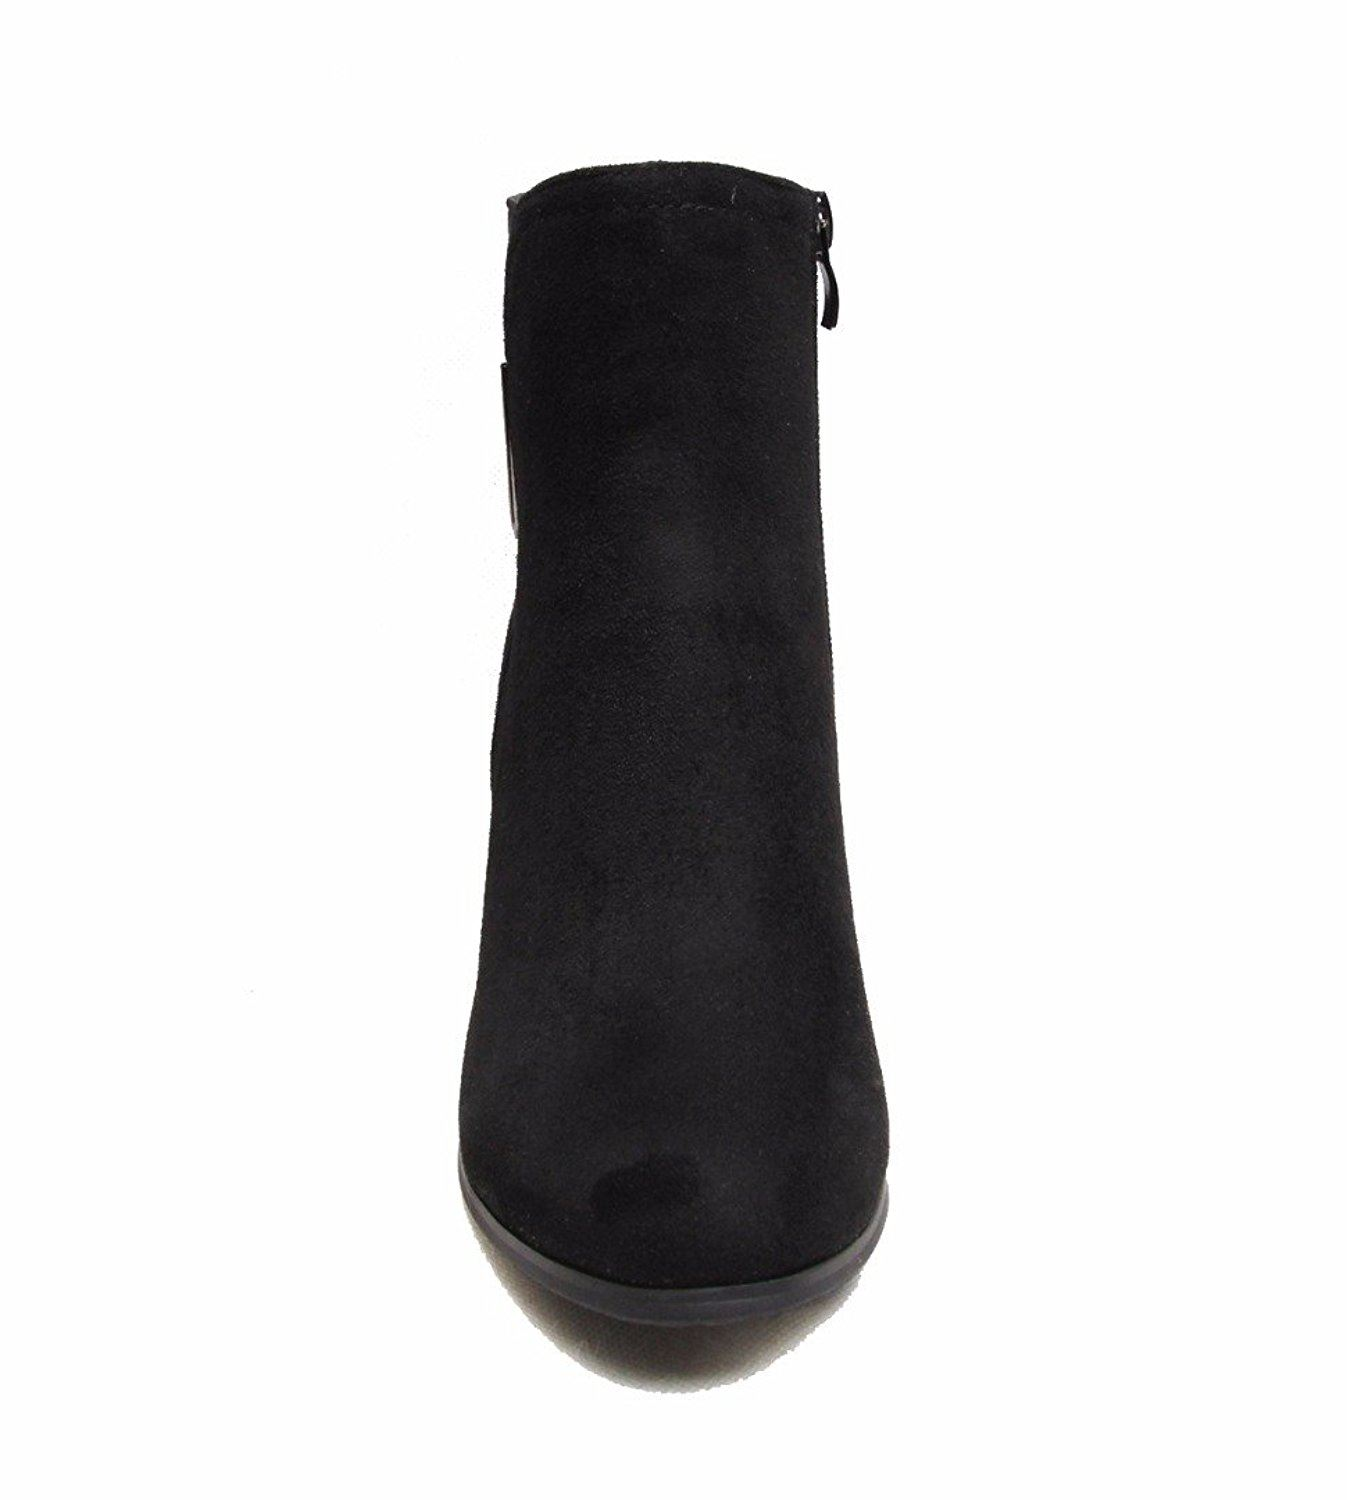 suede boots faux womens zipped ankle mid heel uk sizes 3 8